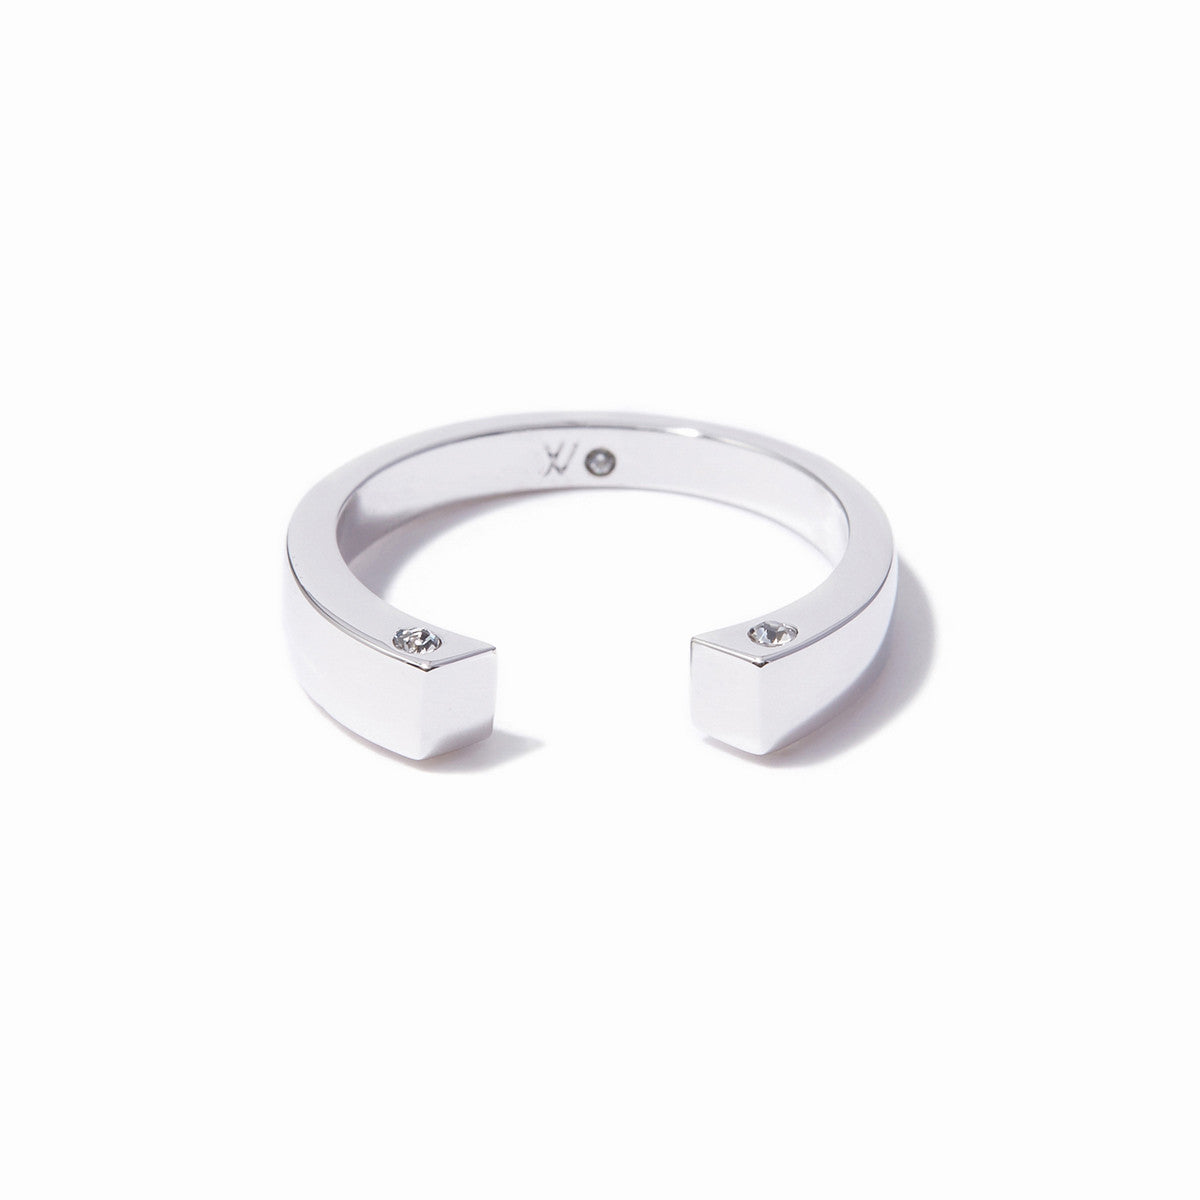 Cira Squared Ring - Rhodium